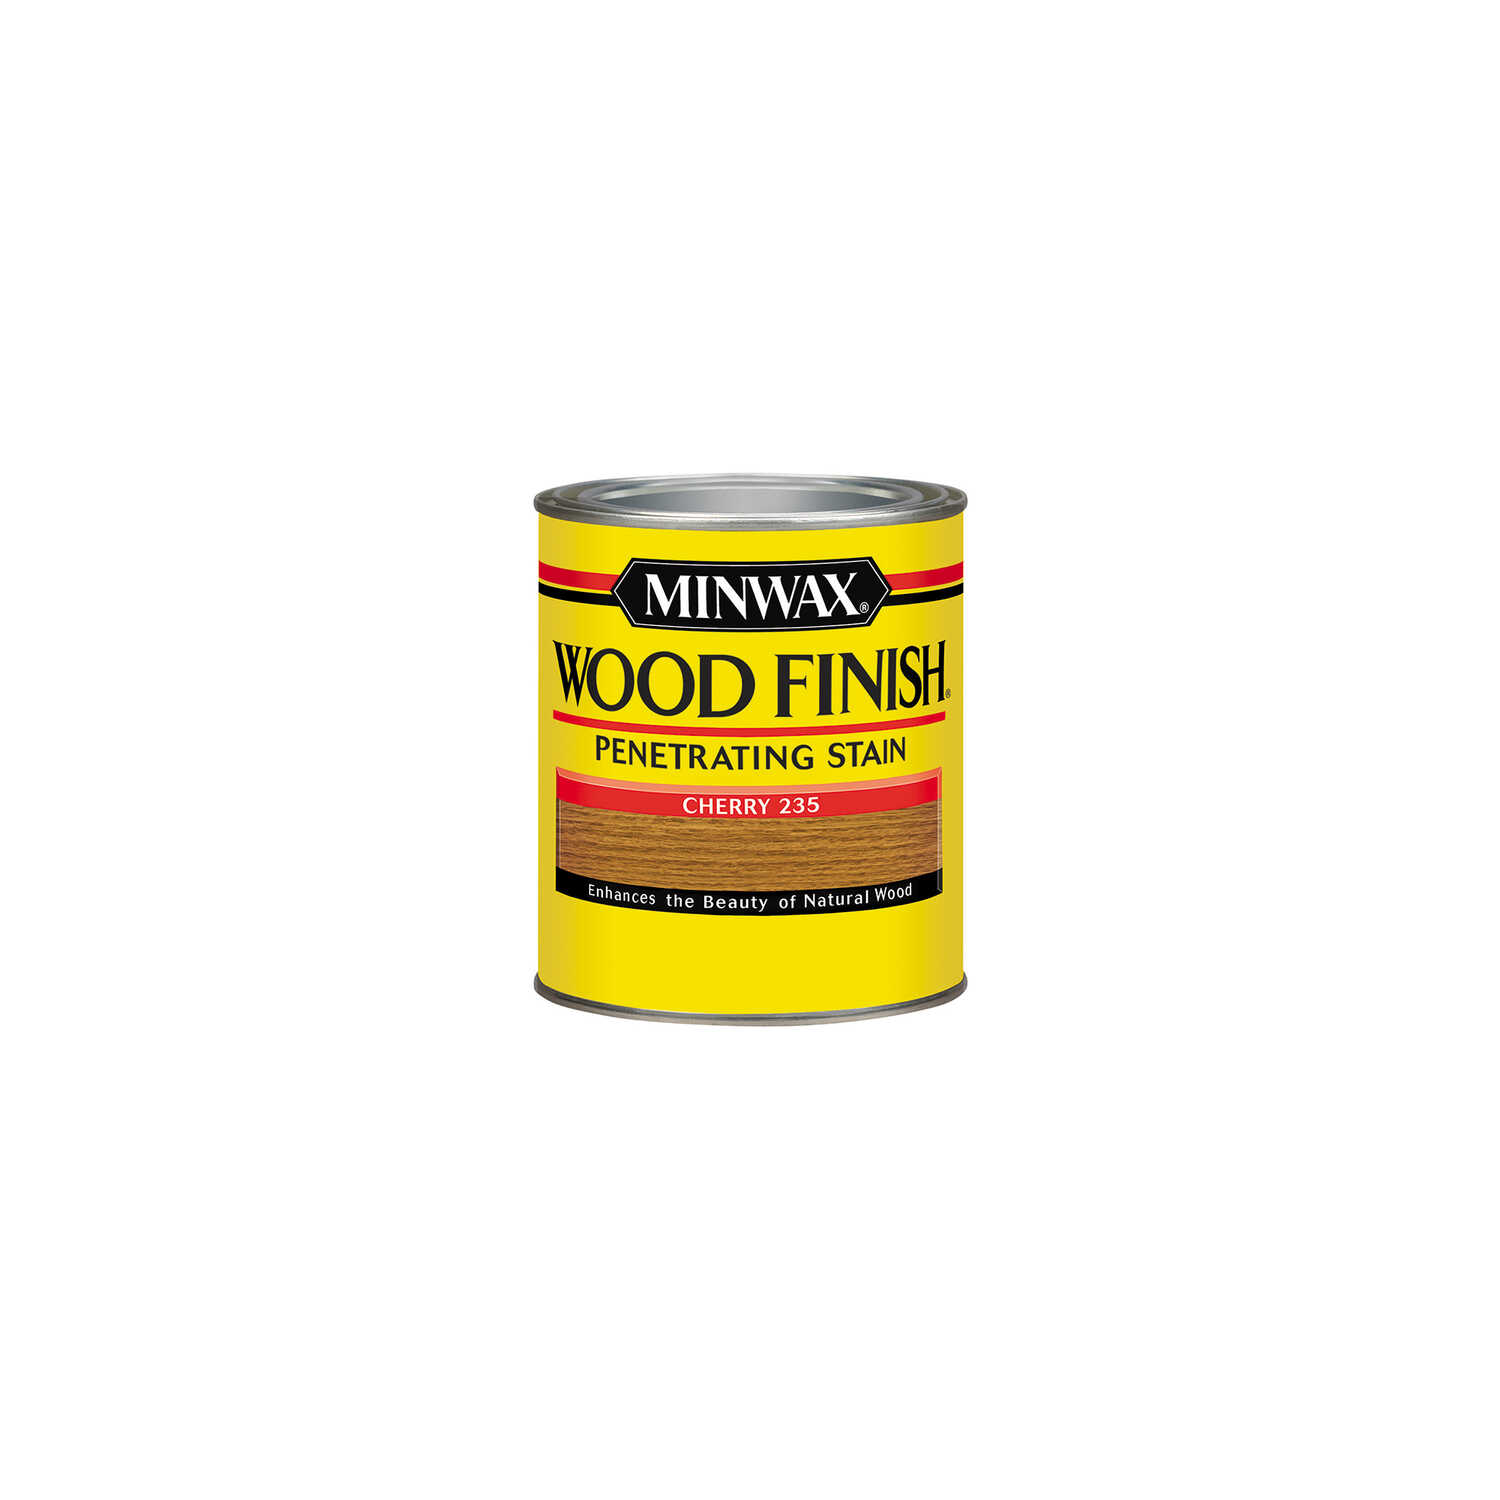 Minwax  Wood Finish  Semi-Transparent  Cherry  Oil-Based  Wood Stain  0.5 pt.